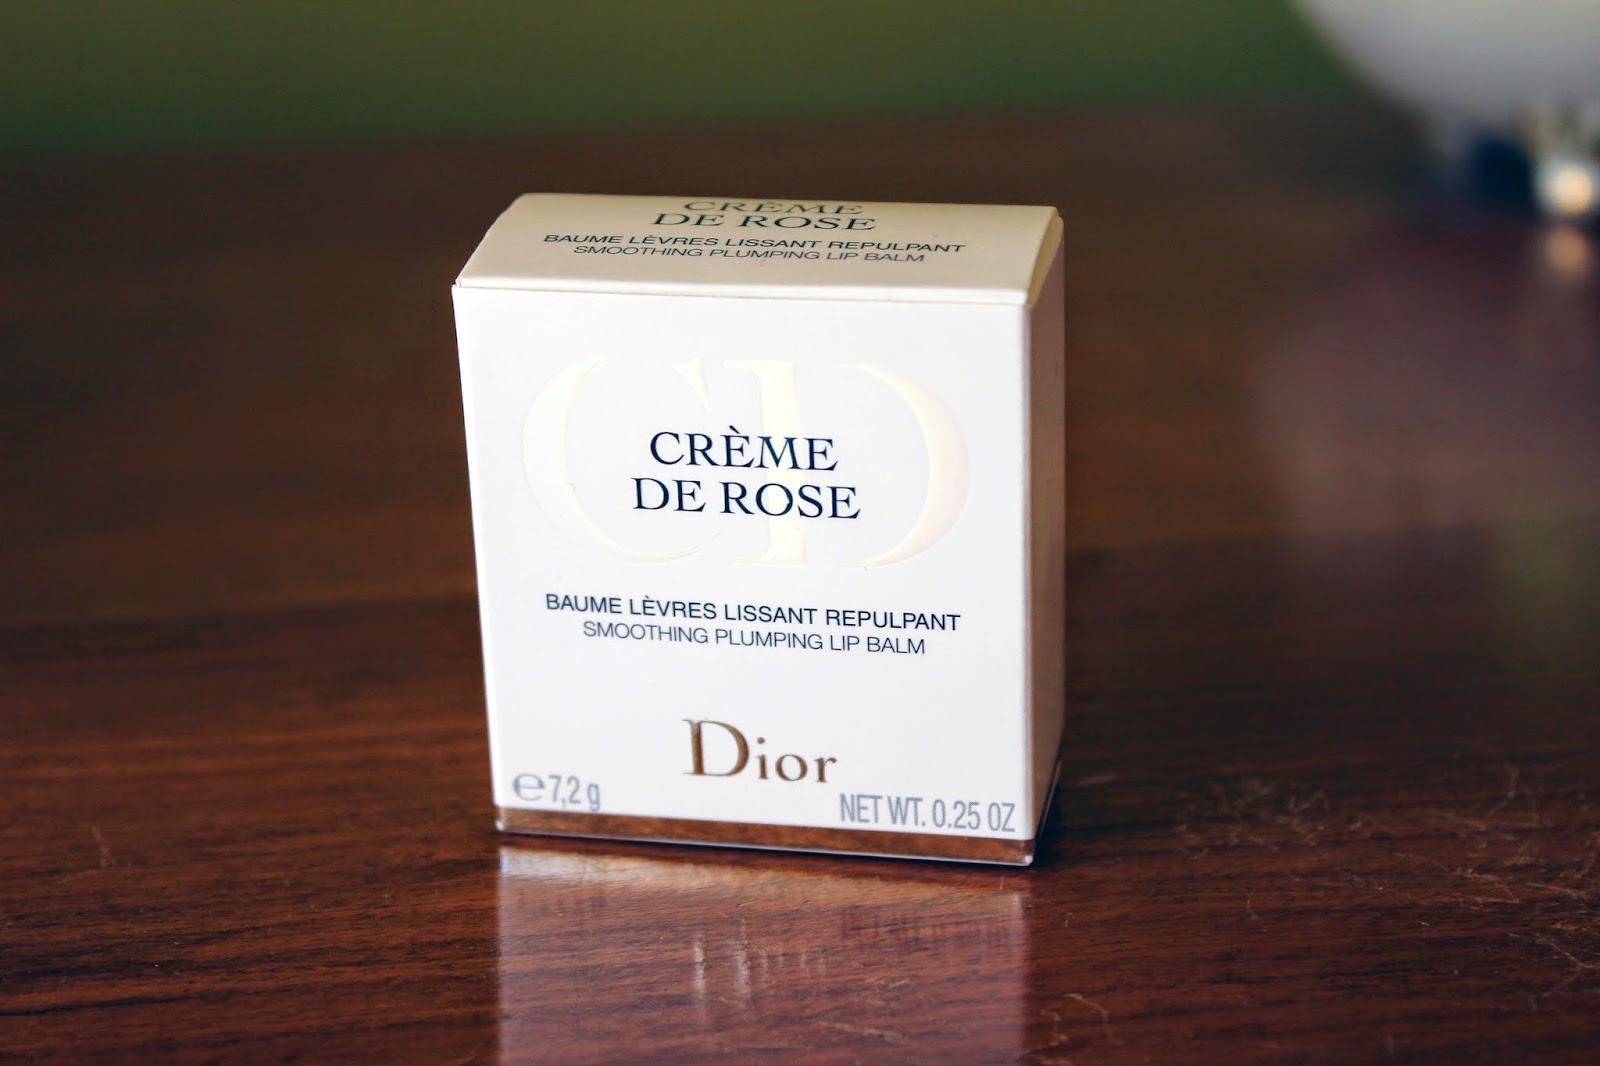 Creme De Rose Smoothing Plumping Lip Balm by Dior #6